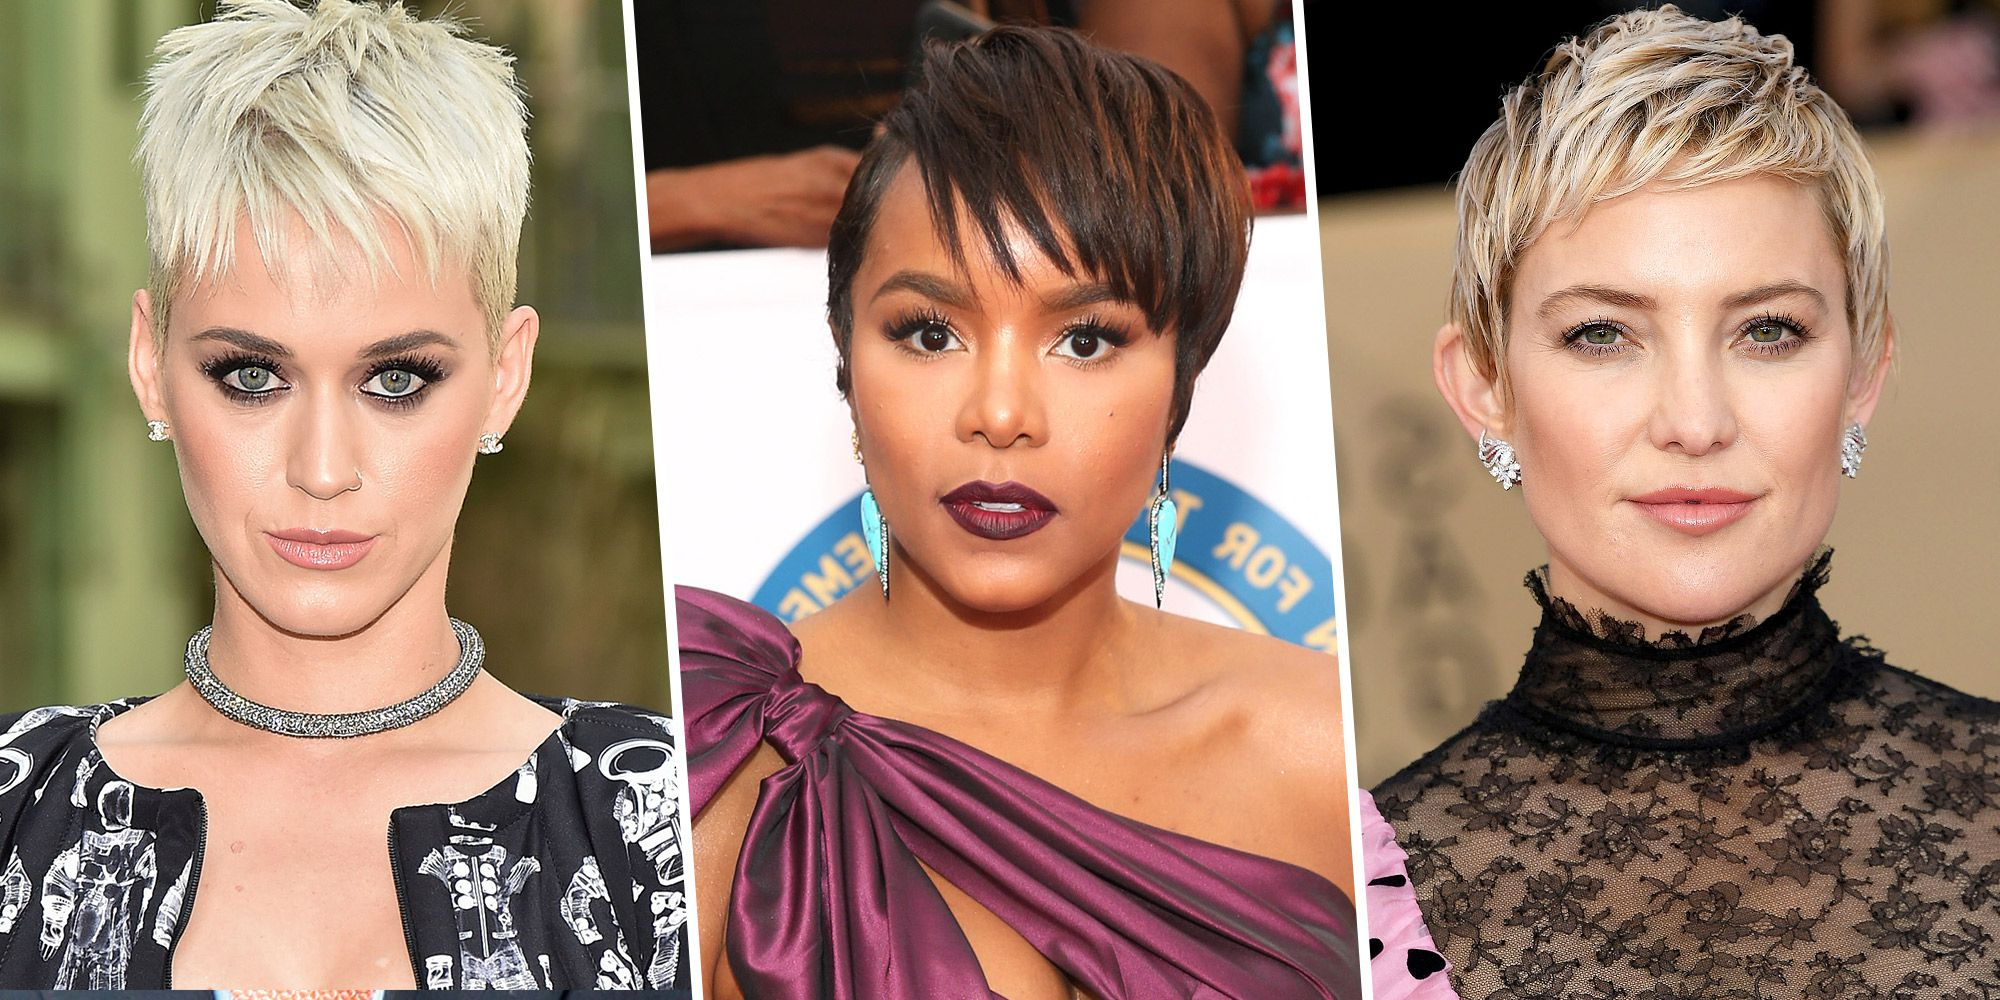 53 Best Pixie Cut Hairstyle Ideas 2018 – Cute Celebrity Pixie Haircuts Pertaining To Pastel Pink Textured Pixie Hairstyles (View 14 of 20)